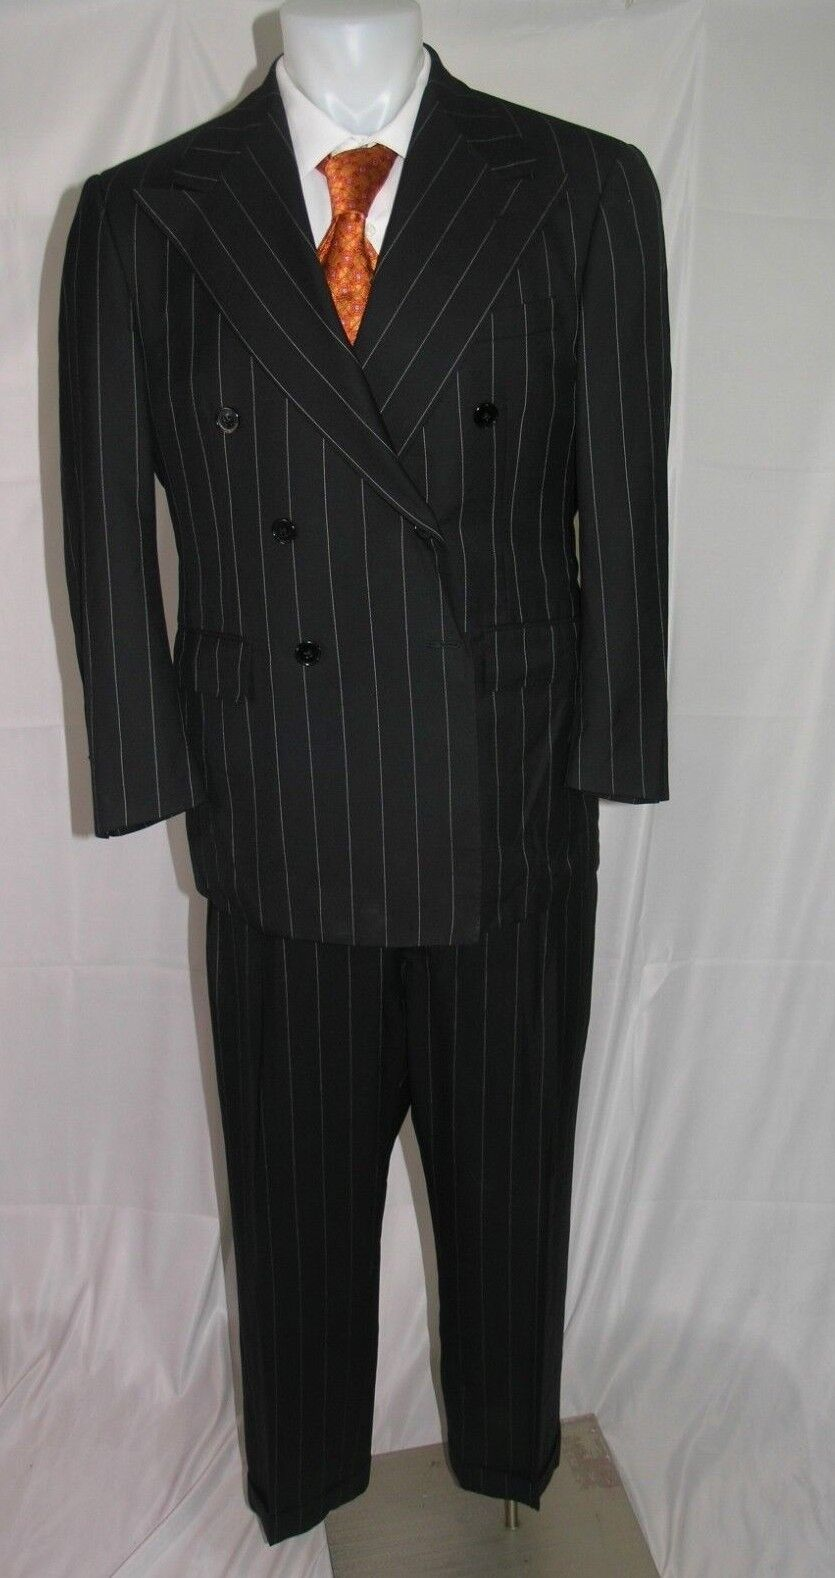 Ralph Lauren lila Label Cashmere Blend Double Breasted Suit 41 R 35 x 28